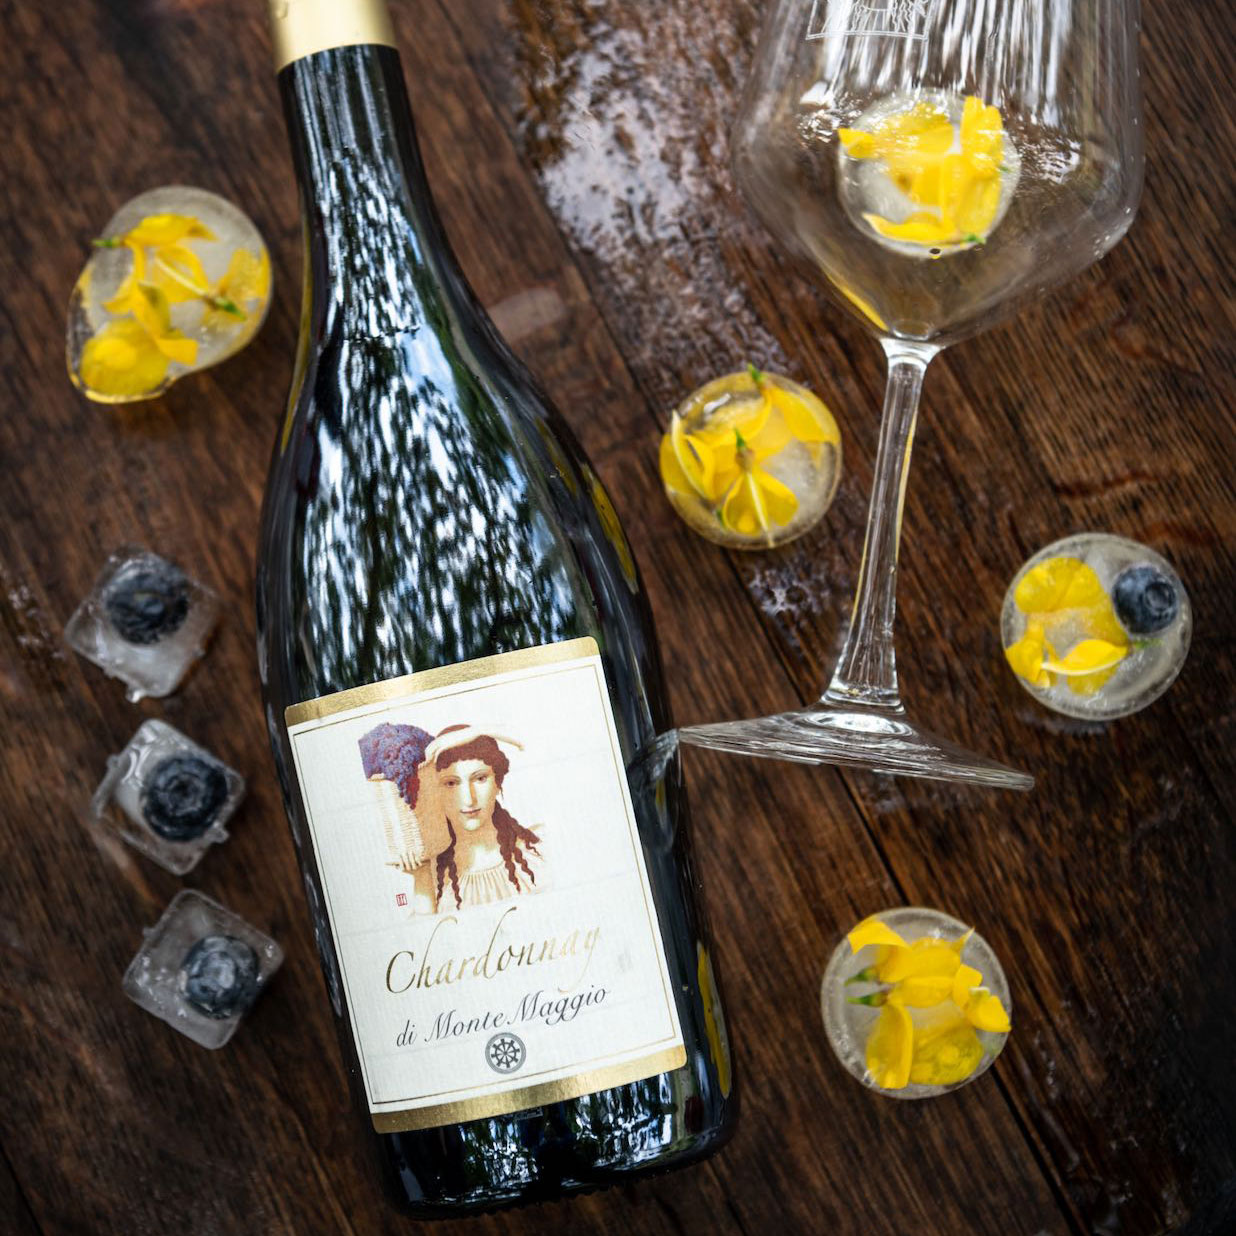 This Chardonnay is bottled with transparent glass corks to prevent the risk of deterioration